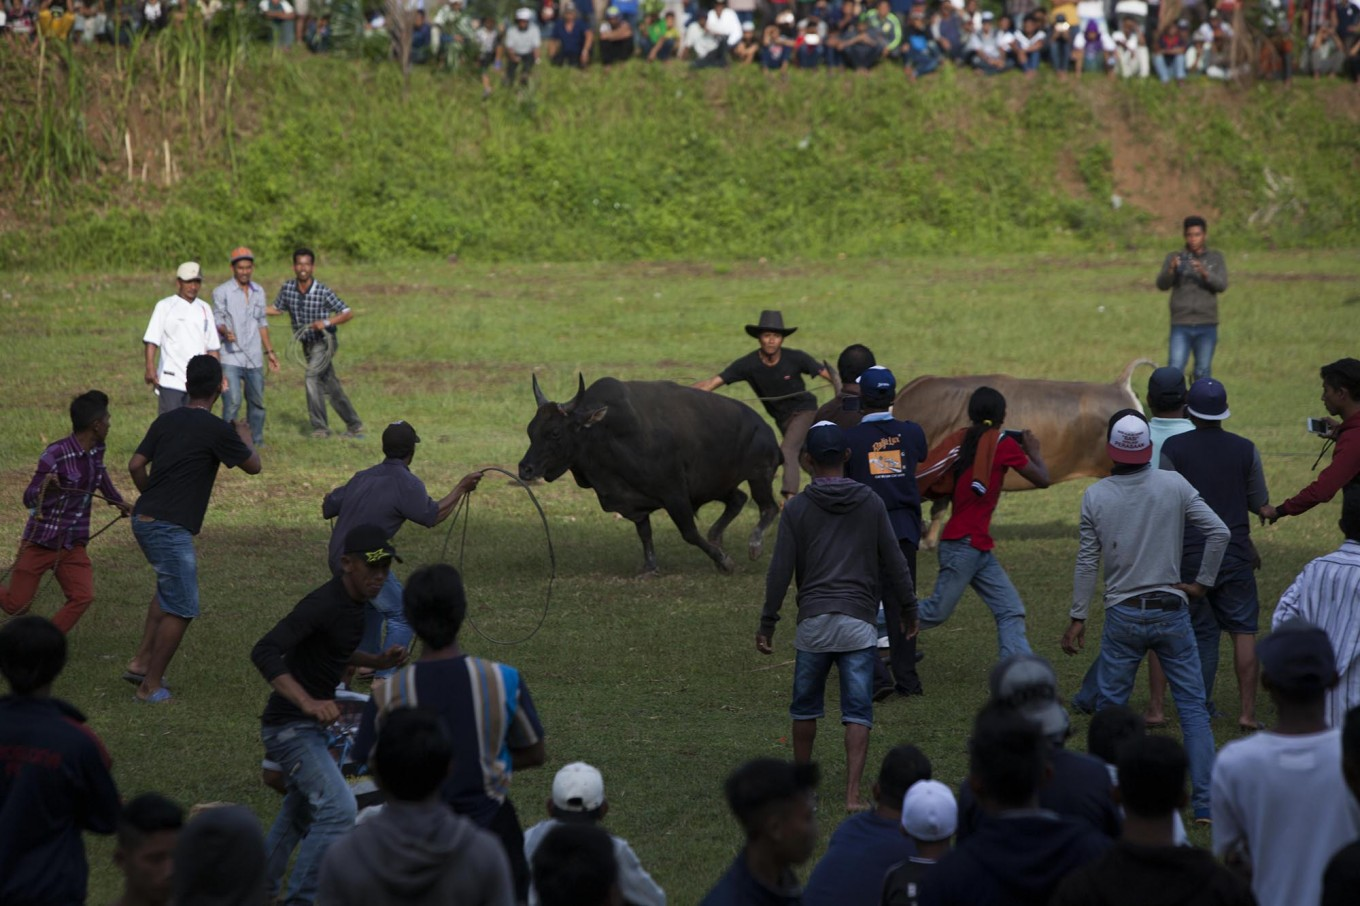 Guards try to catch an escaped bull. JP/Sigit Pamungkas